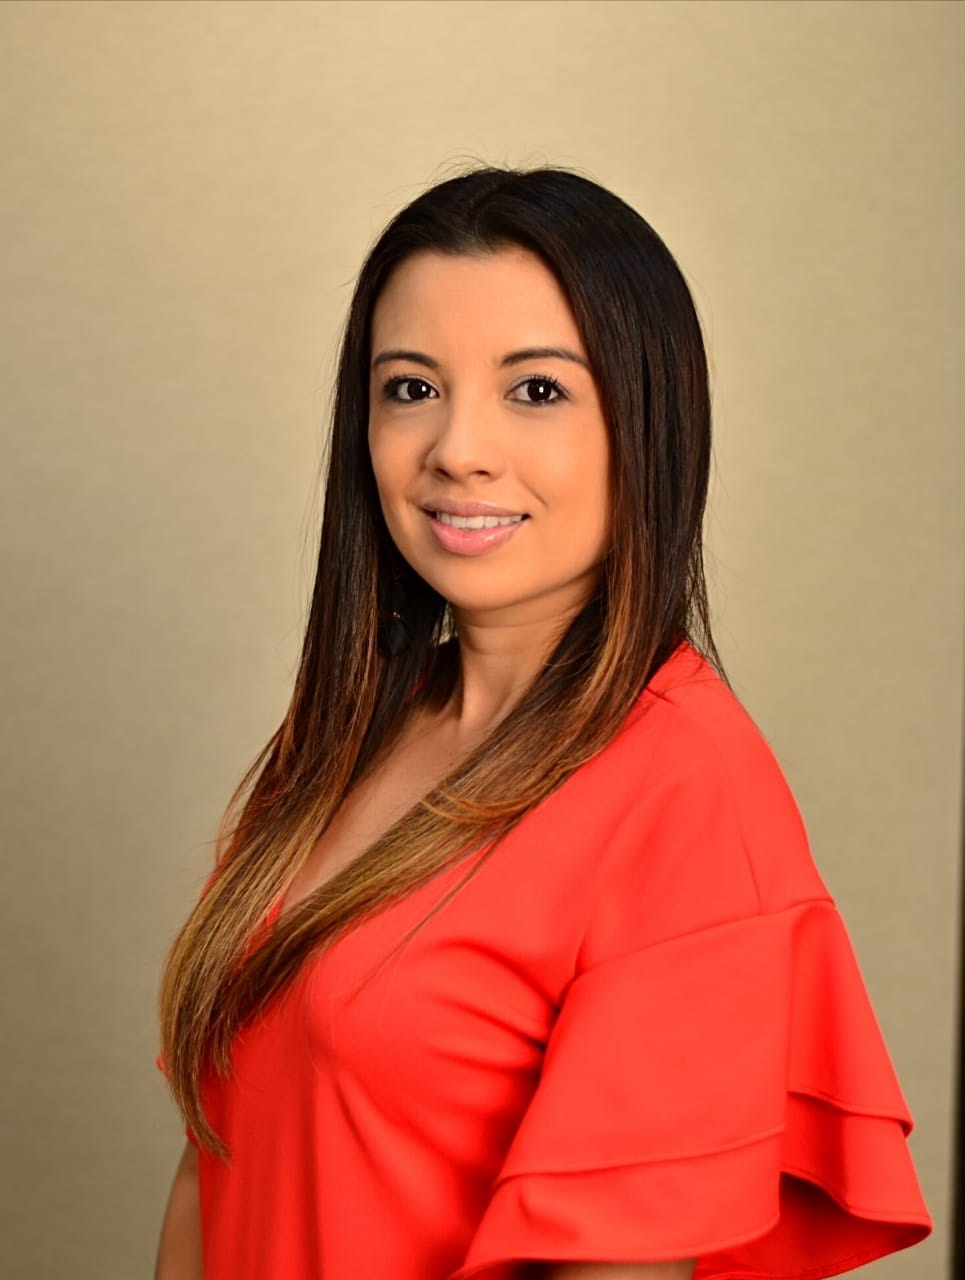 Charmex names Carolina Triana new sales manager in Latin America